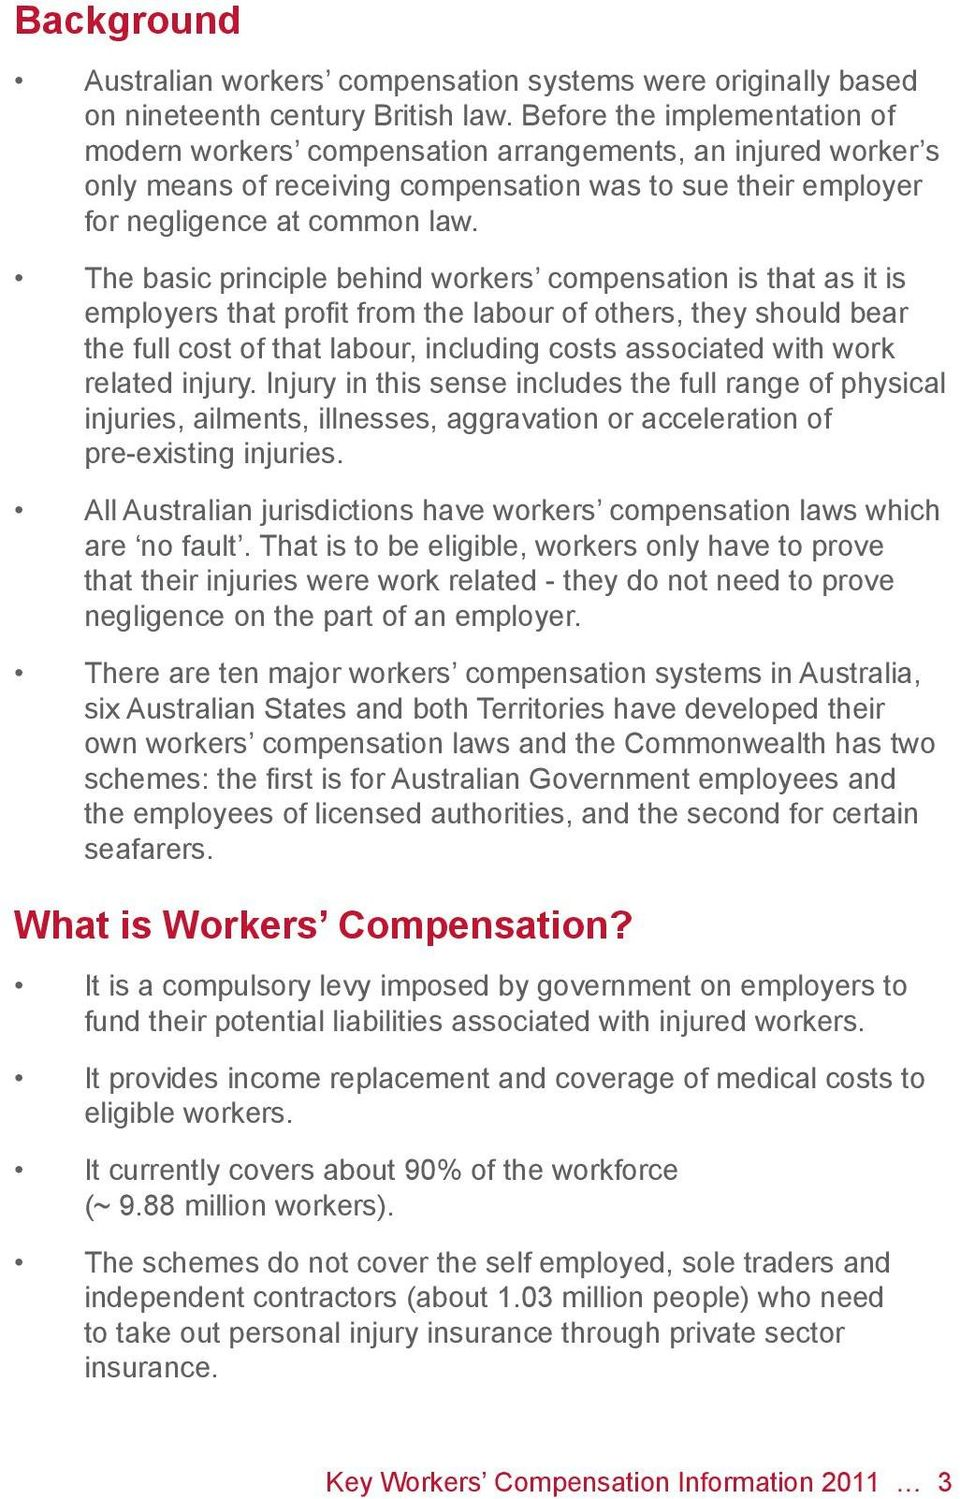 The basic principle behind workers compensation is that as it is employers that profit from the labour of others, they should bear the full cost of that labour, including costs associated with work